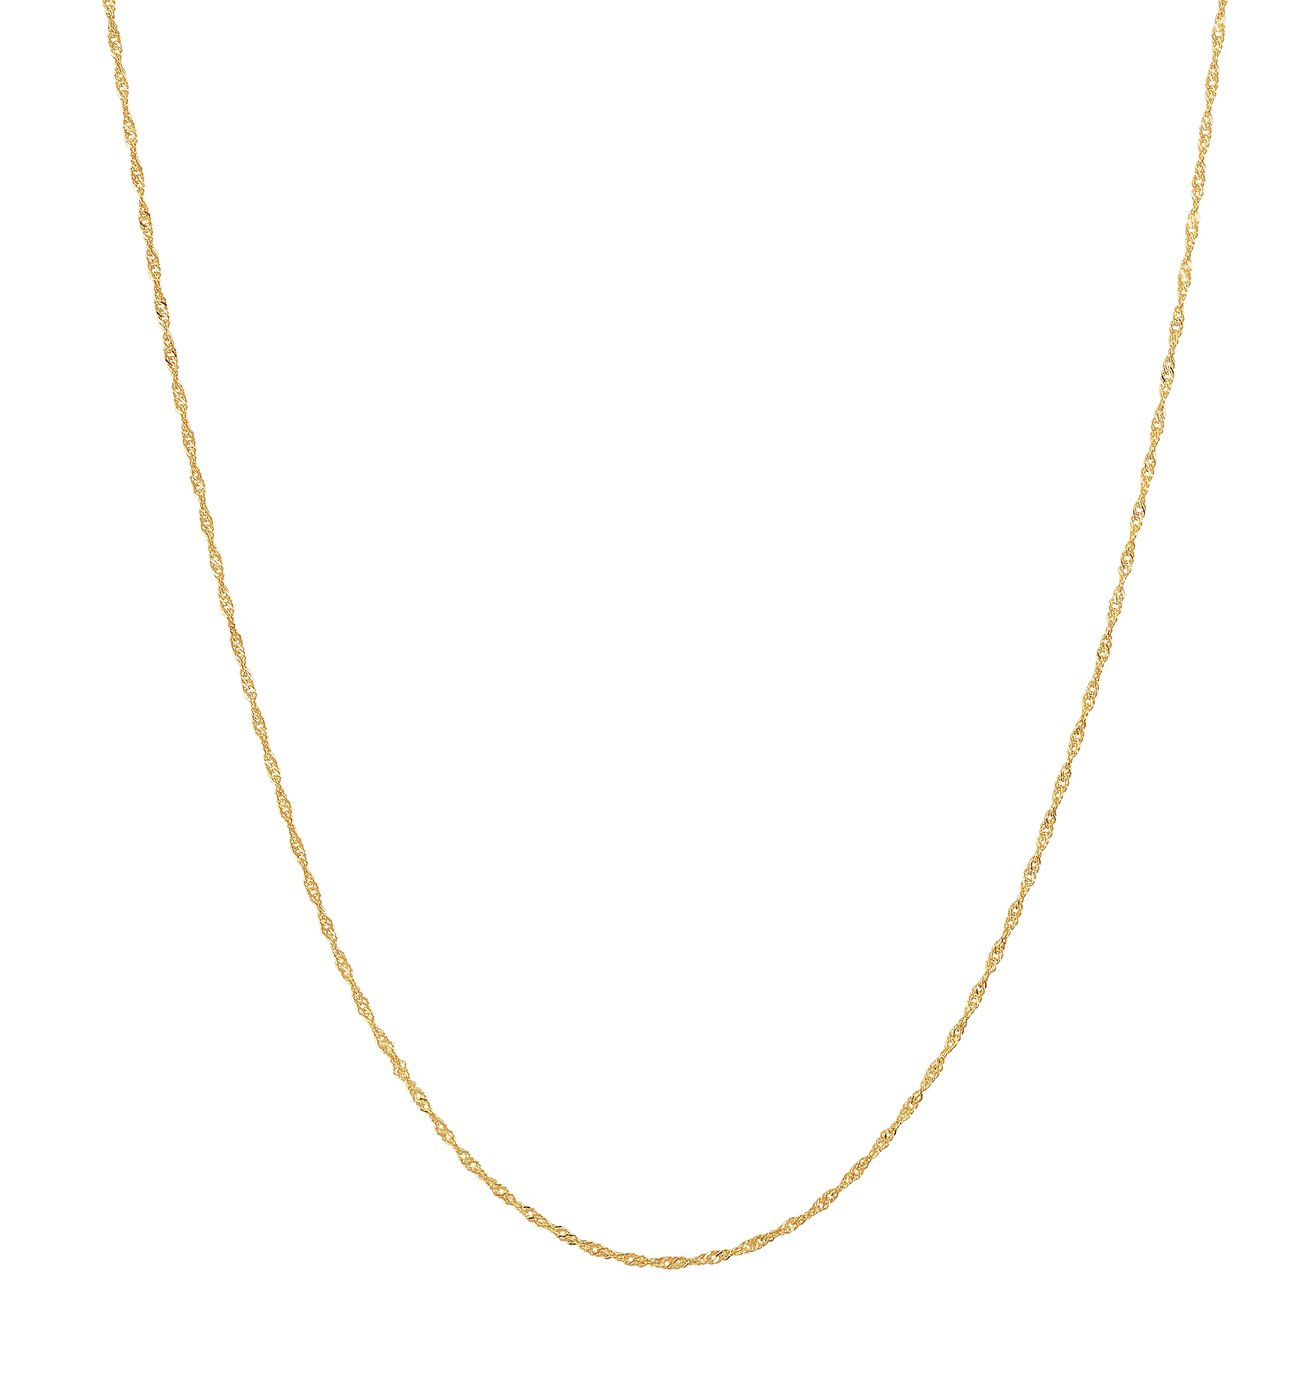 Revere 9ct Yellow Gold Twist Chain Necklace